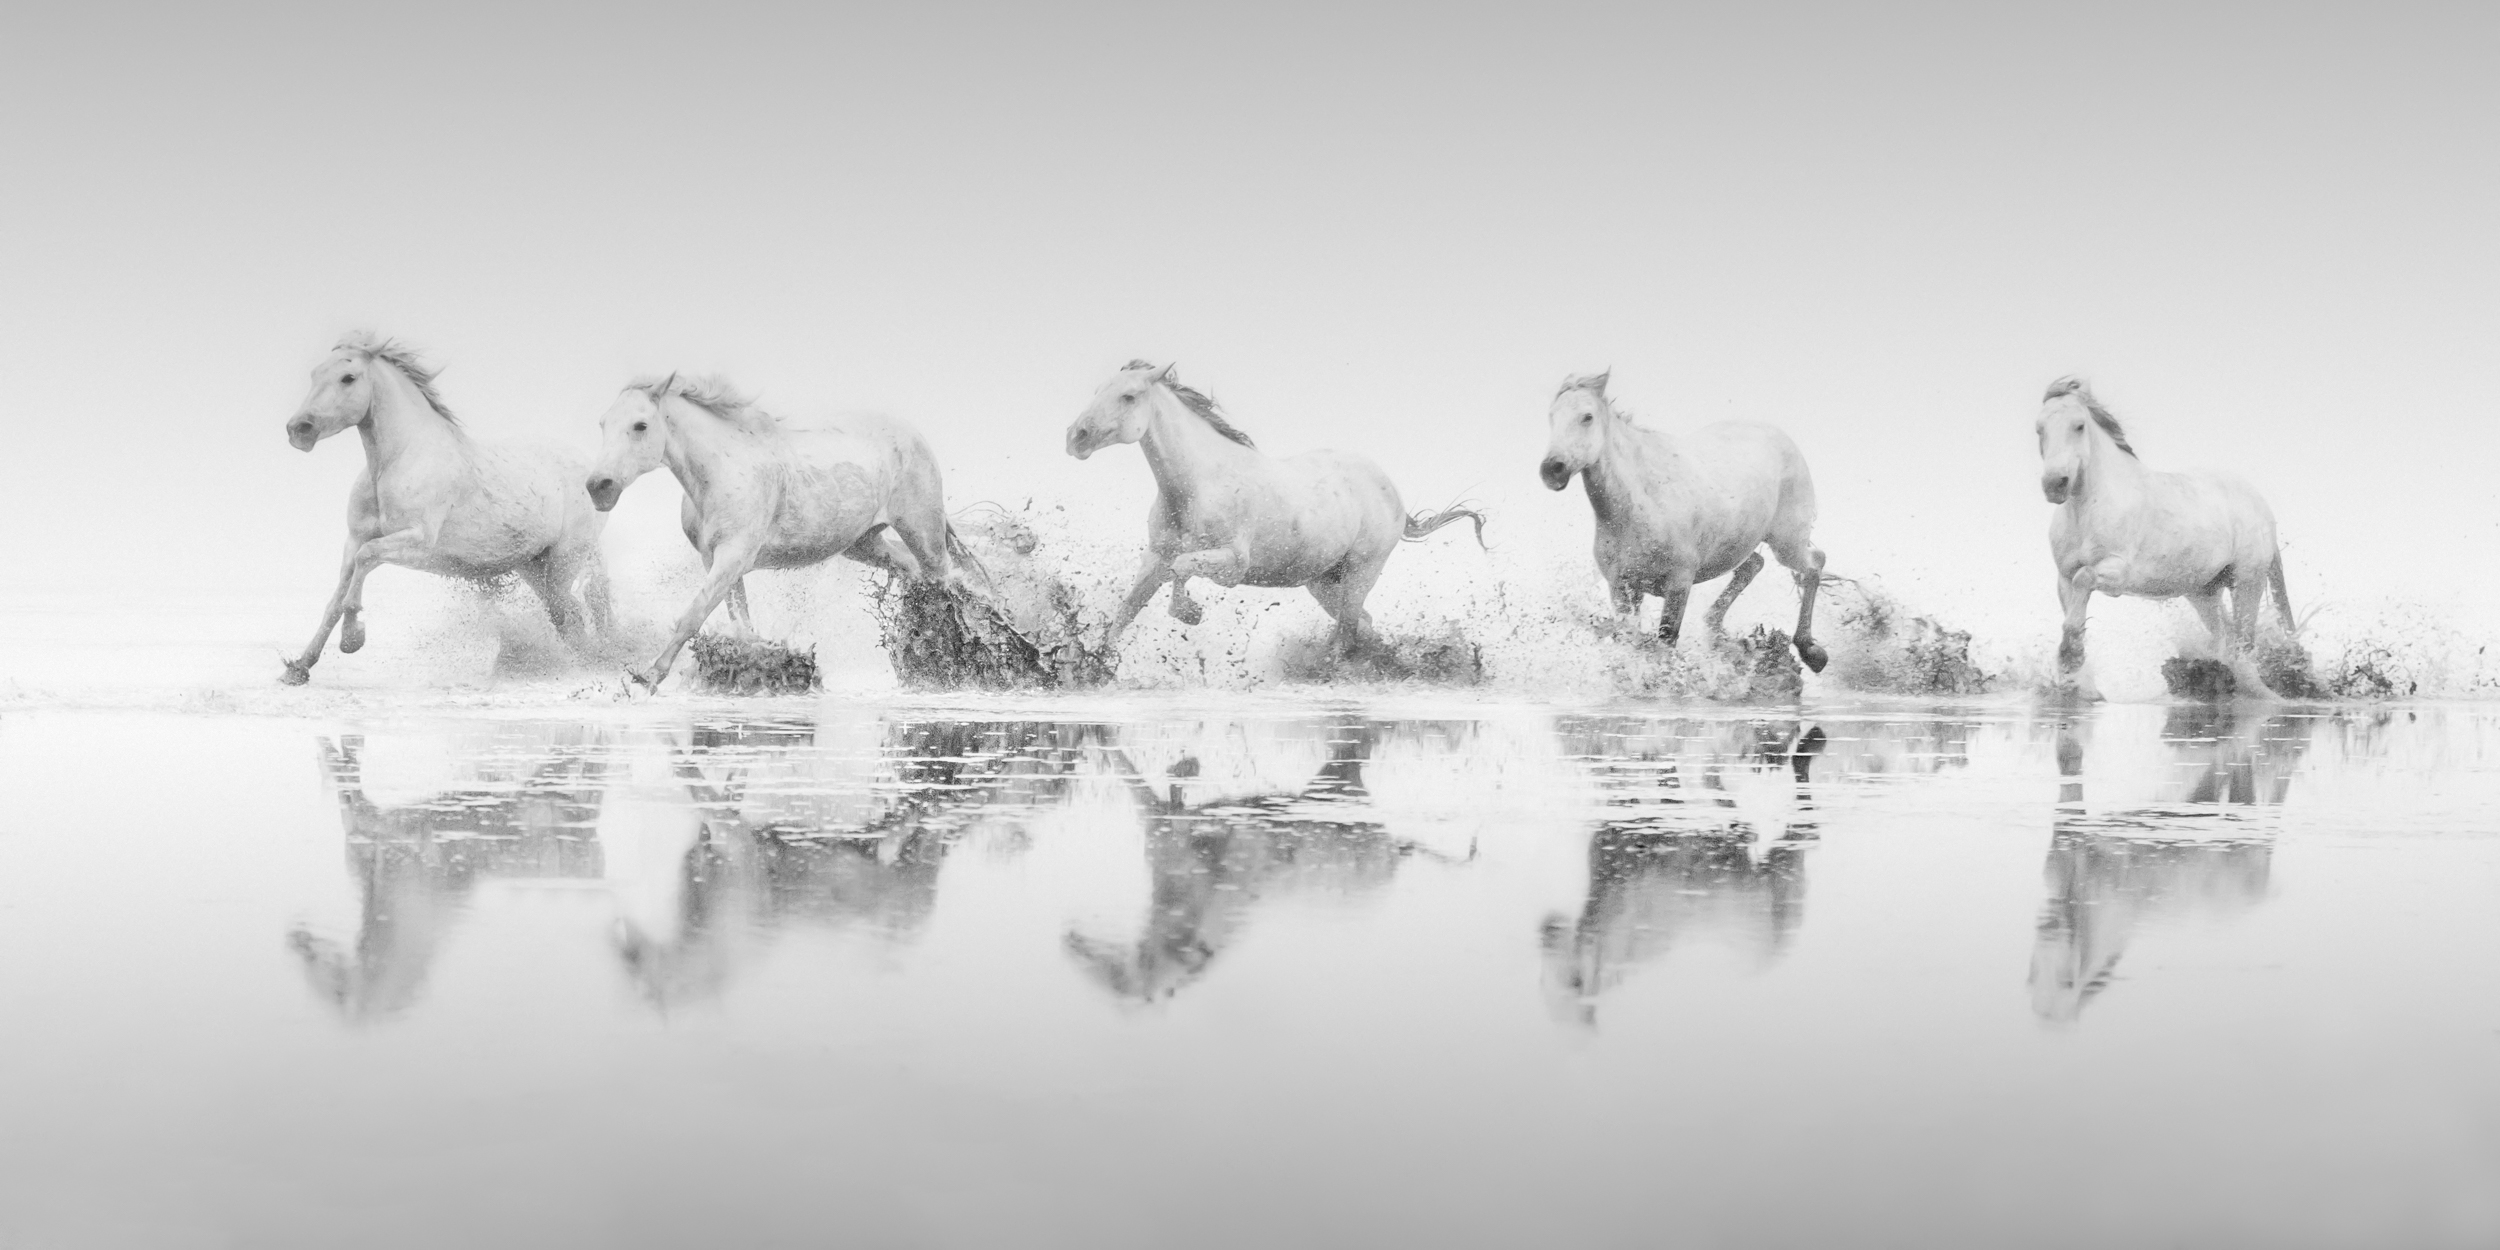 Reflections of the Camargue II